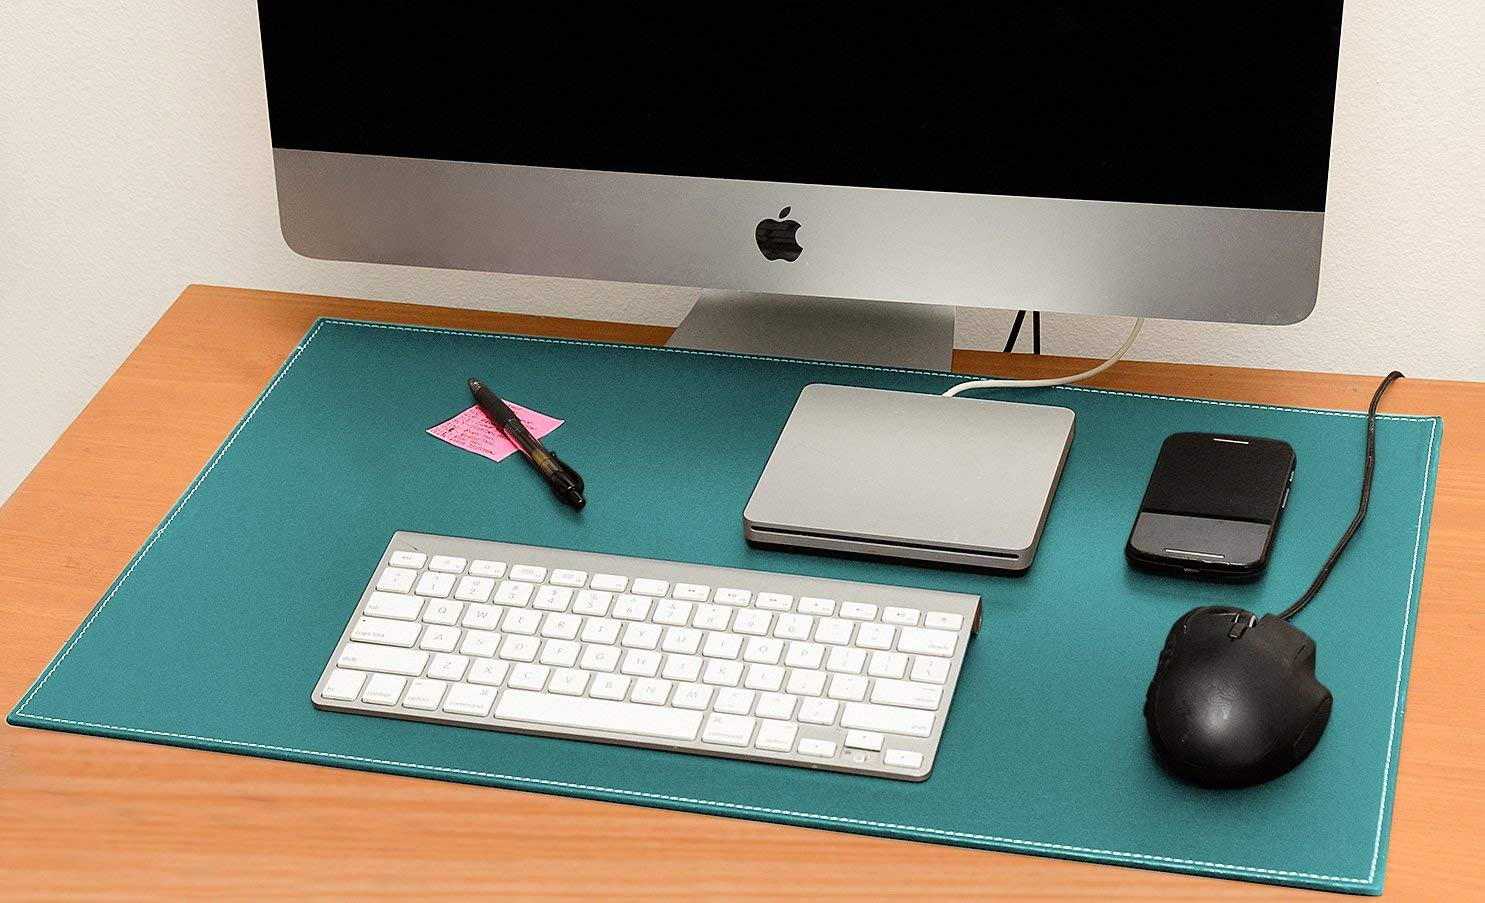 Desk Pad Blotter Protector Comfortable With Faux Leather Feels Smooth And Sturdy With Reversible Style Colors Cyan To Magenta, Size 16 X 24 Inches.